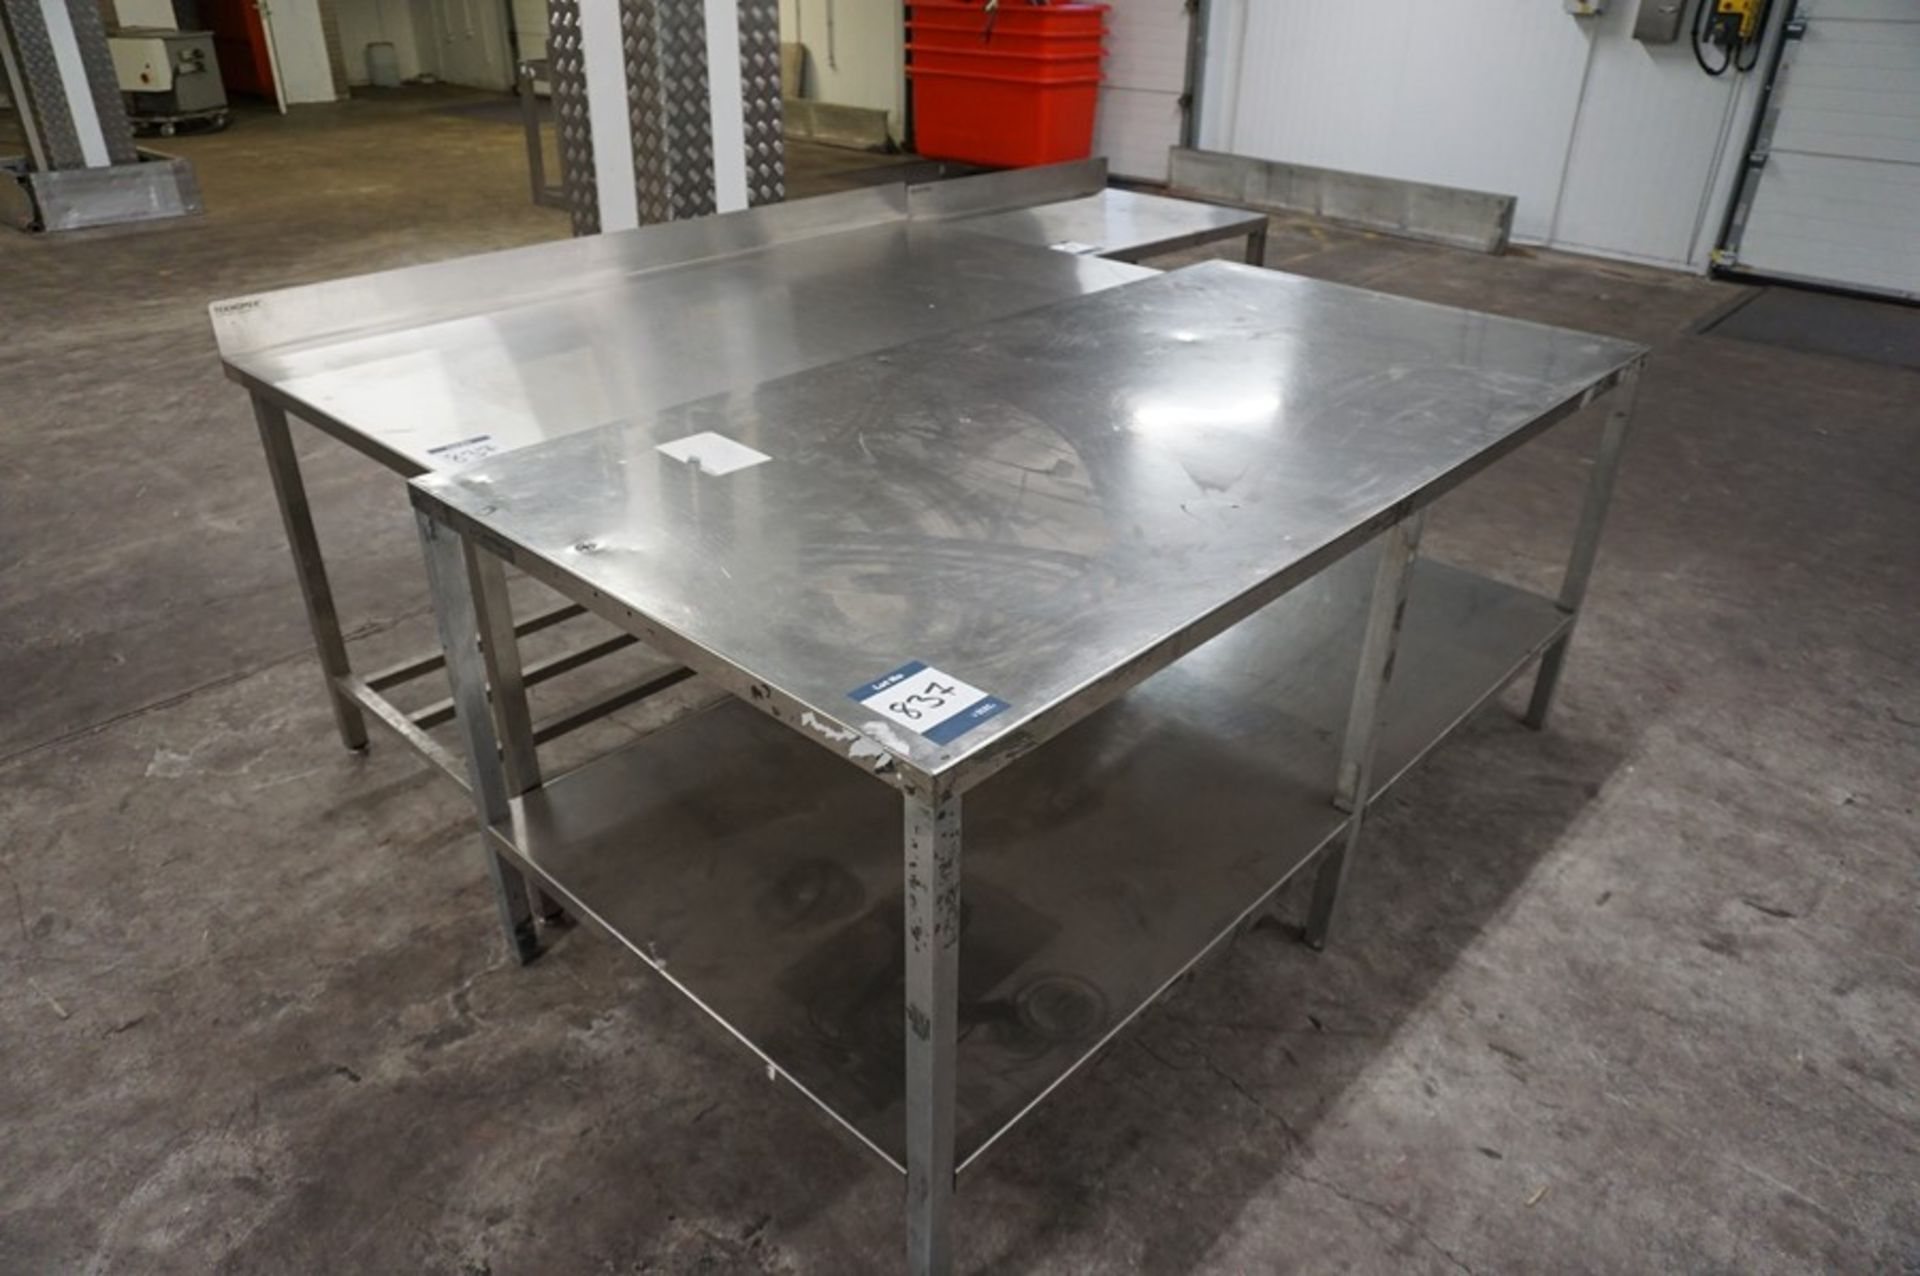 Lot 837 - 3 x Various stainless steel prep tables, as lotted